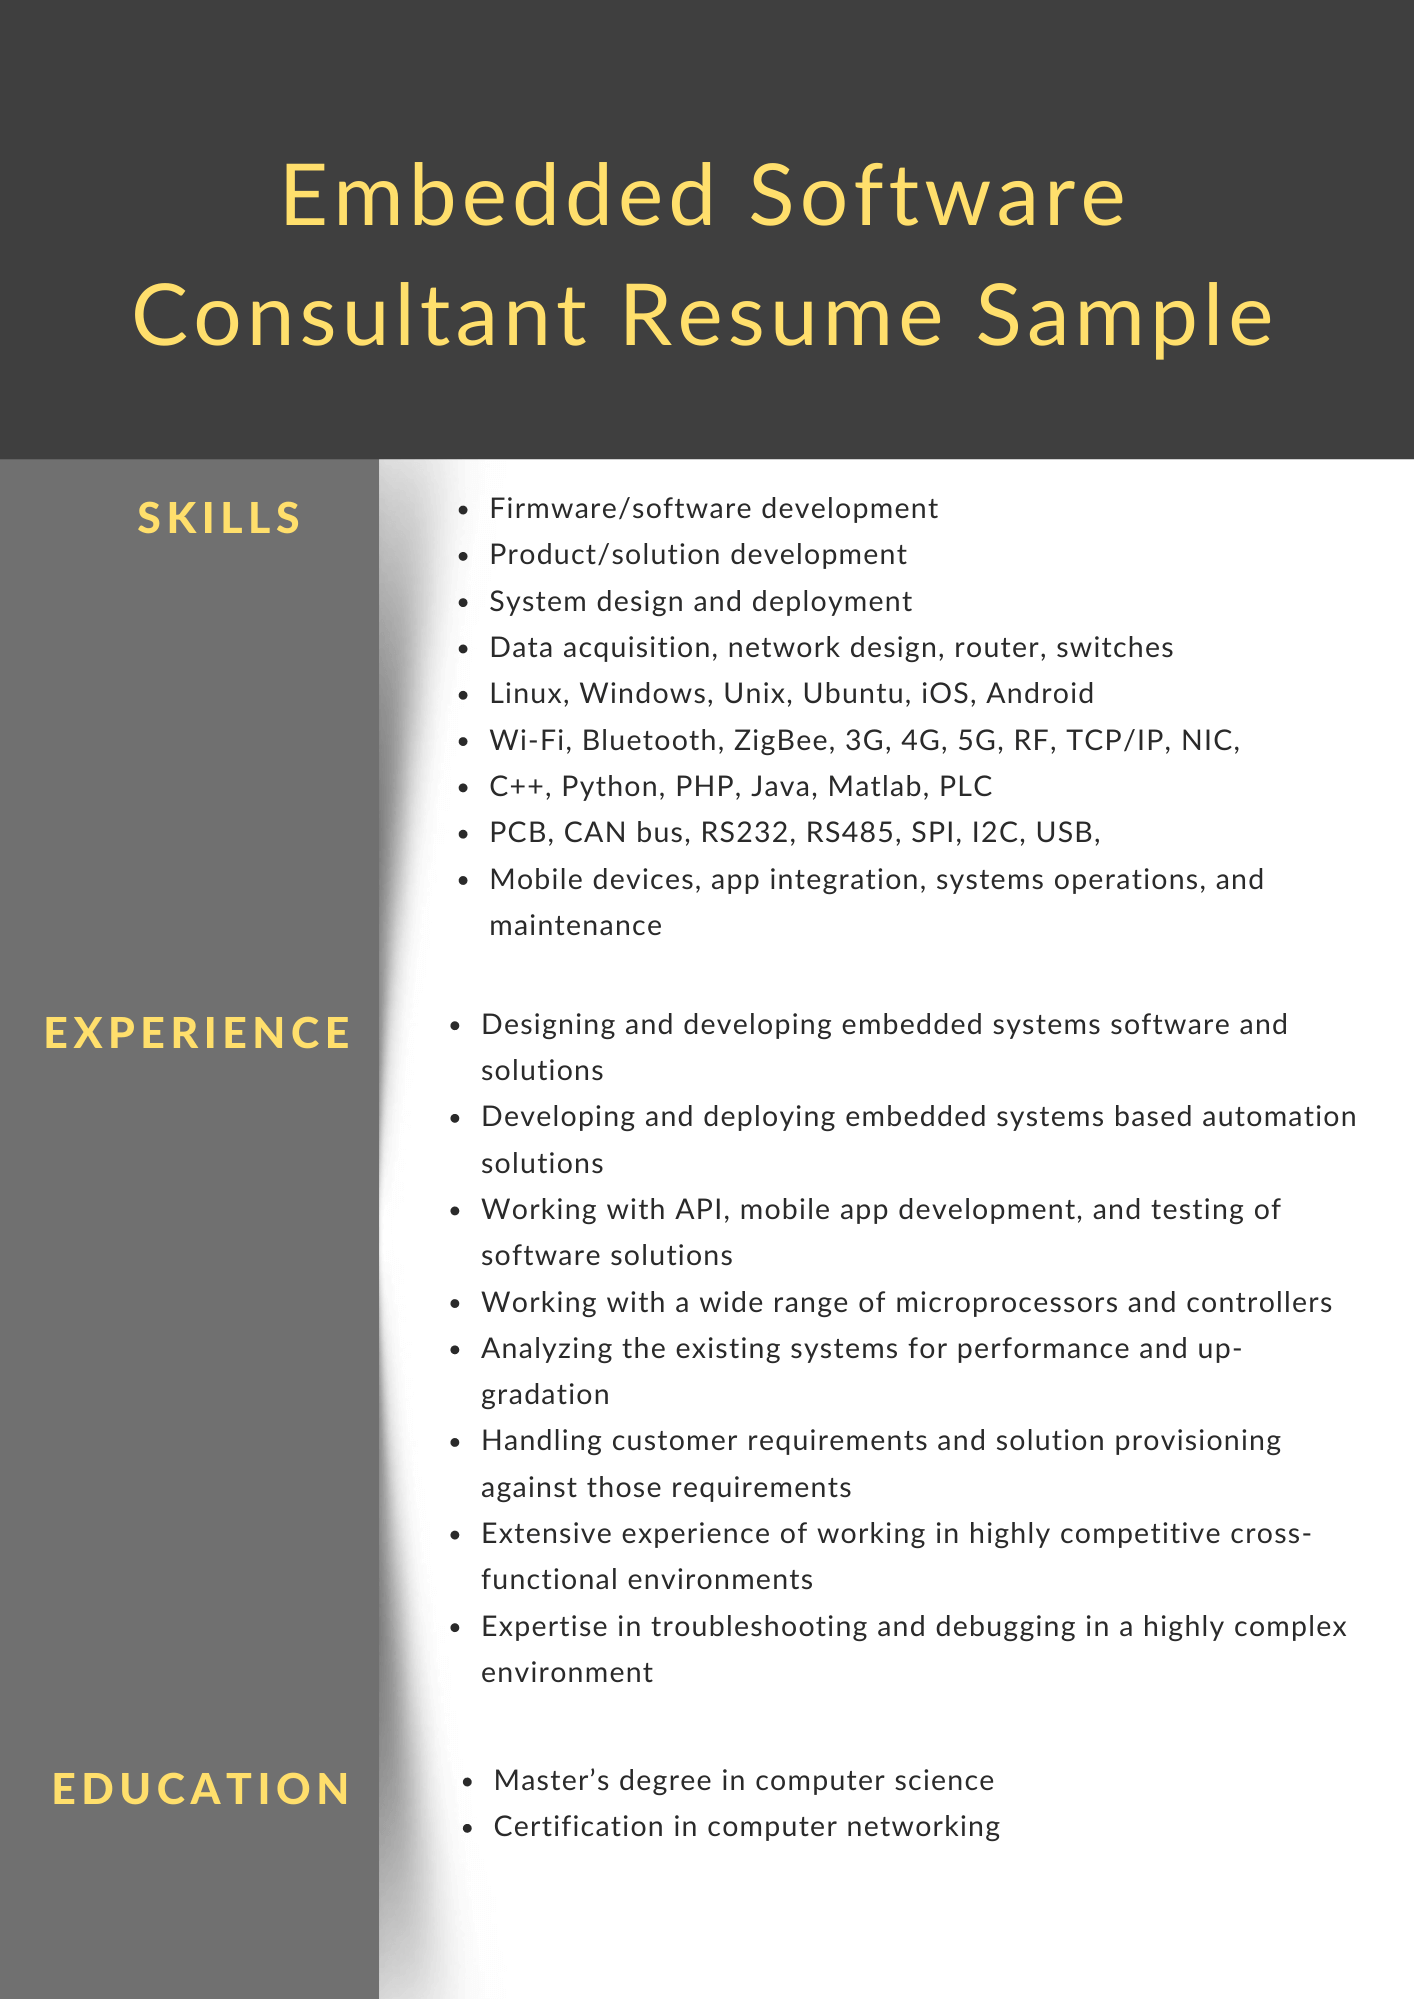 embedded software consultant resume sample